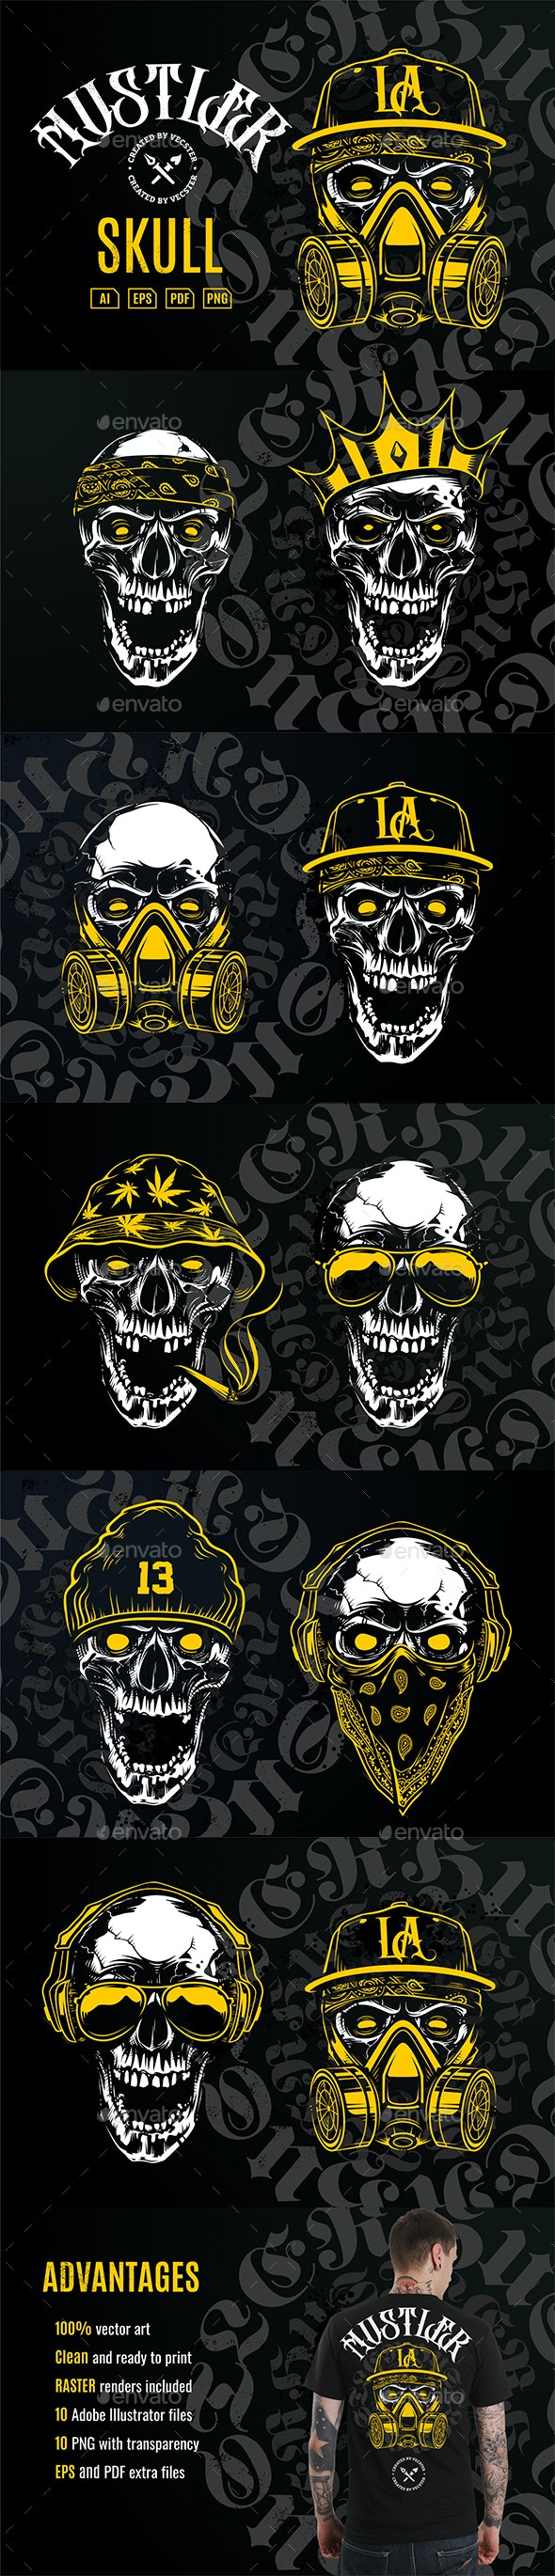 Hustler Skull Vector Art - Tattoos Vectors